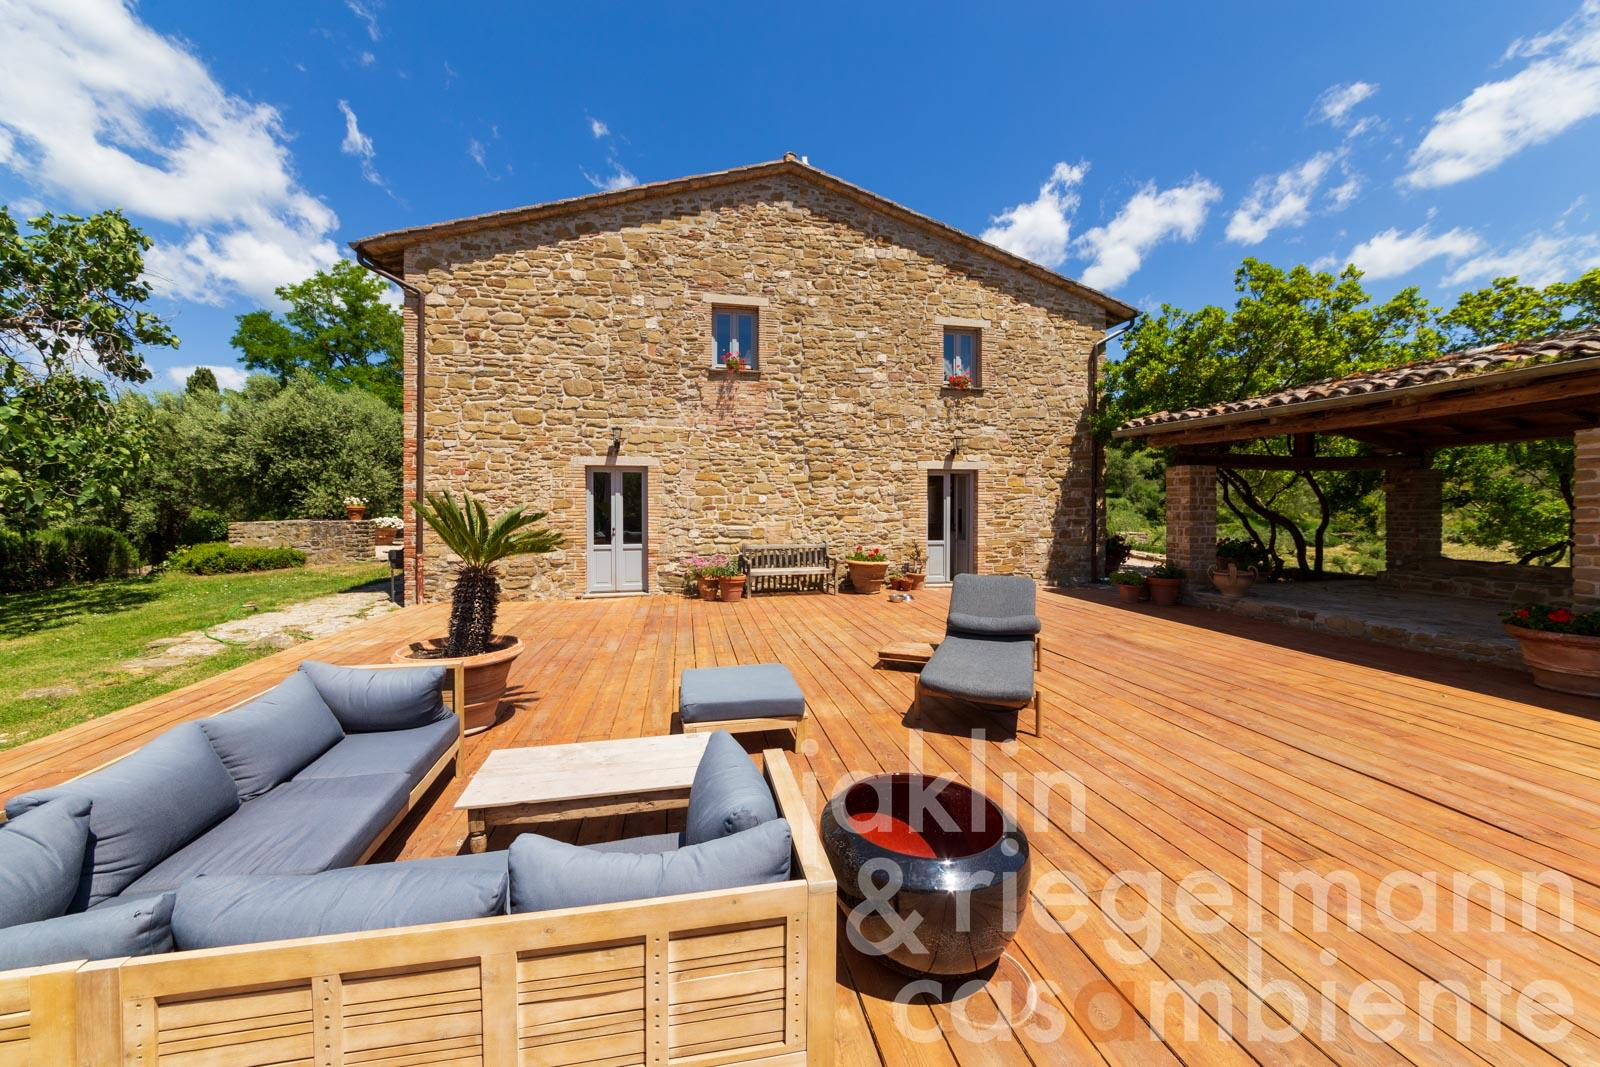 Special country estate in Umbria with 95 ha of land, panoramic views, pool and olive groves